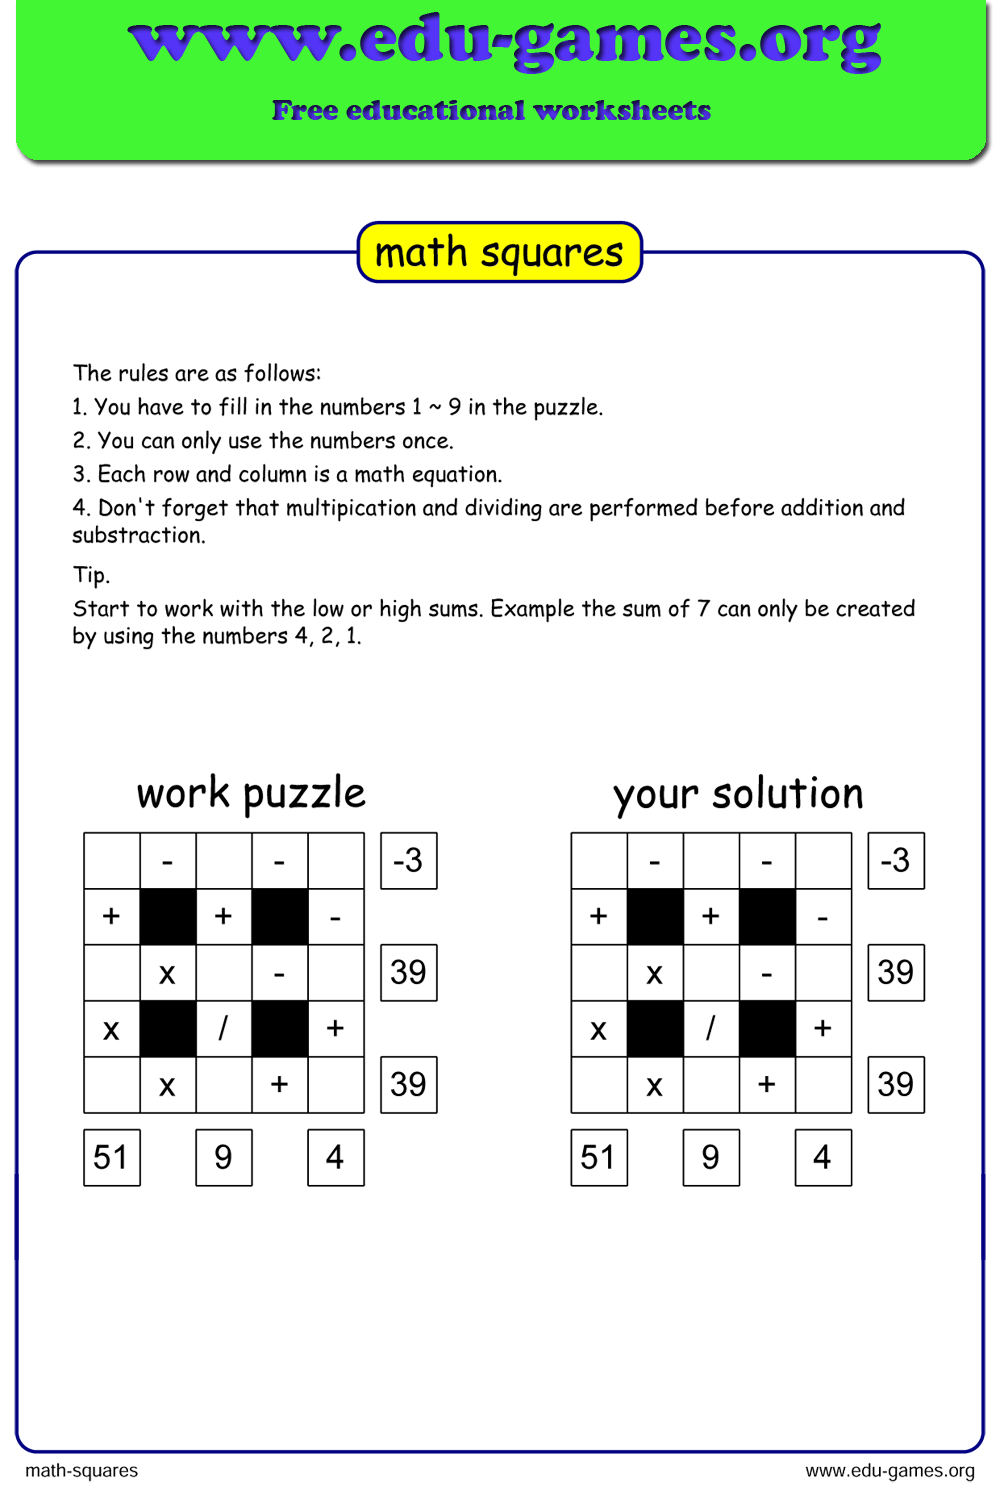 Pin On All Worksheets From The Edu Games Org Website